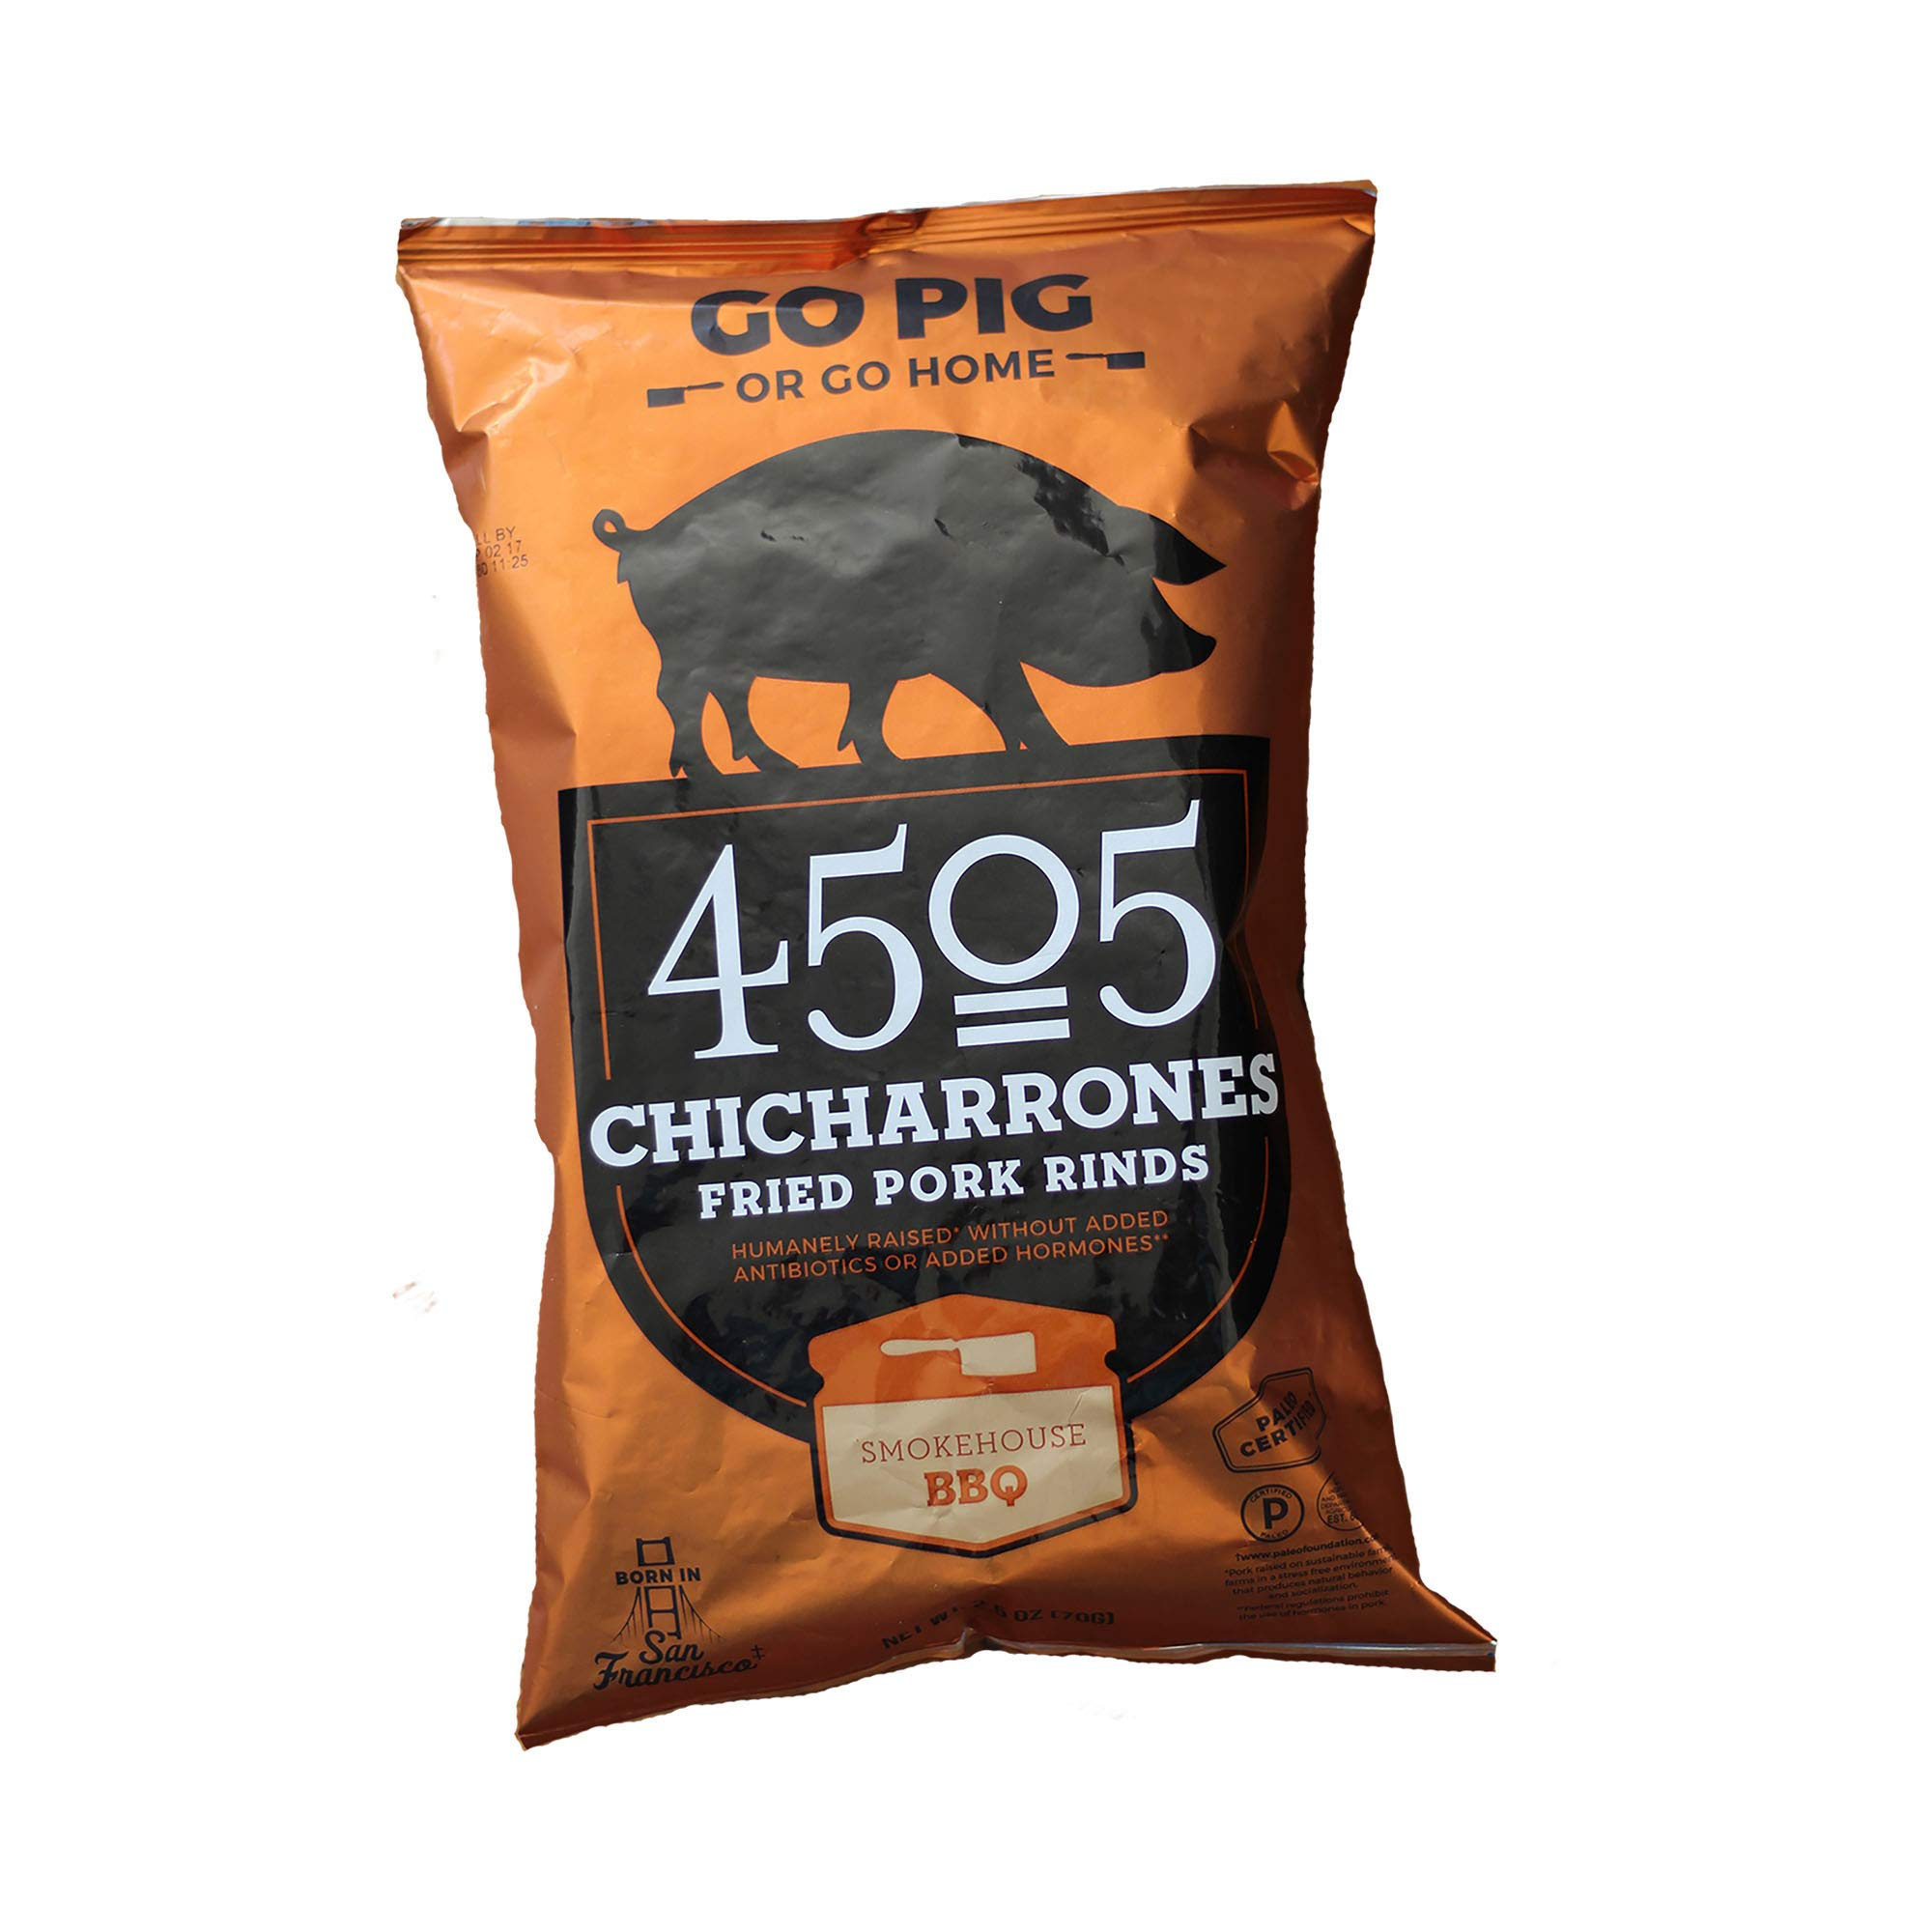 4505 Meats Chicharrones Fried Pork Rinds, Smokehouse BBQ, 2.5 Ounce, 6 Count by 4505 Meats (Image #2)